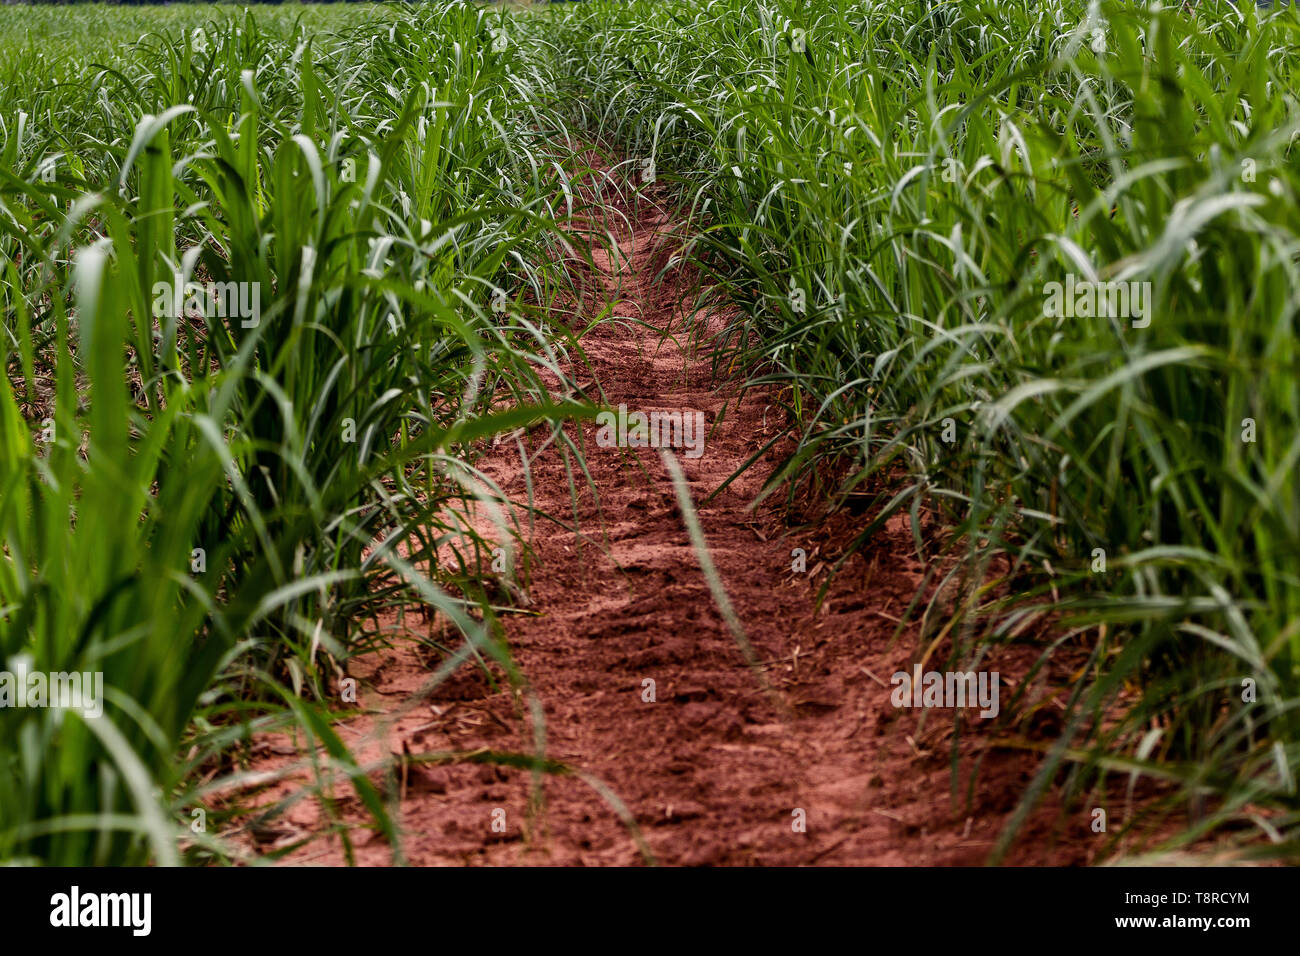 A foot path seen in a field of sugar cane. Brazil became a model of diversification of the use of sugar cane as a raw material, manufacturing varied products from the plant. Agriculture in Brazil is one of the main bases of the country's economy. Agriculture is an activity that is part of the primary sector where the land is cultivated and harvested for subsistence, export or trade. Stock Photo